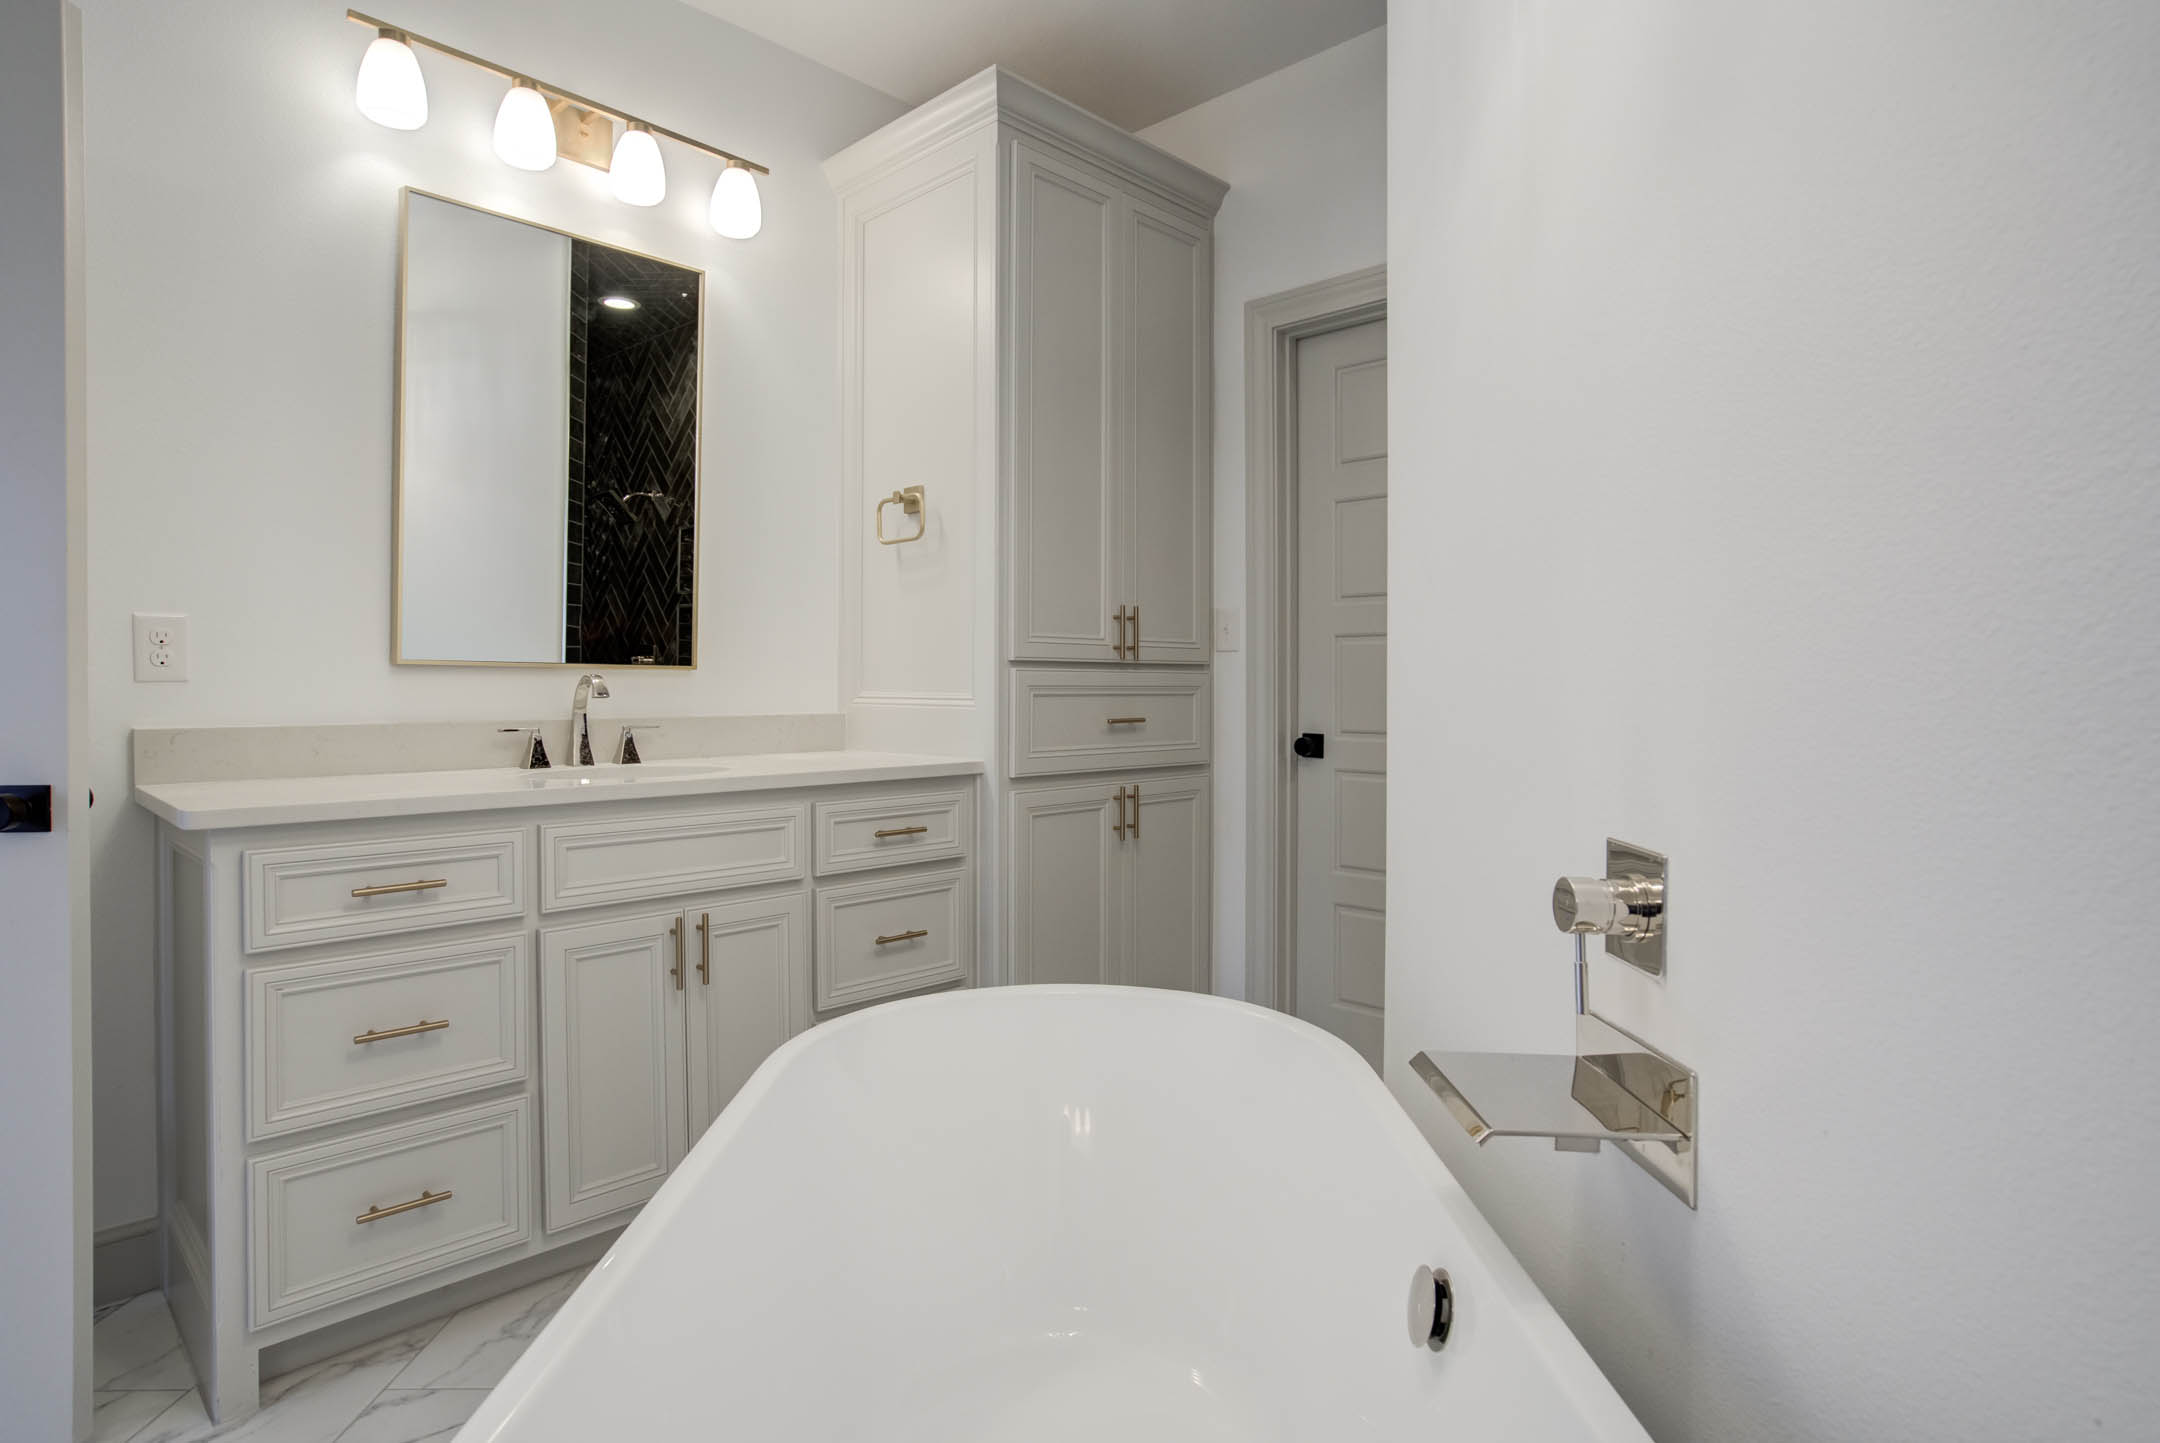 Master bath in new home for sale near Lubbock, Texas.